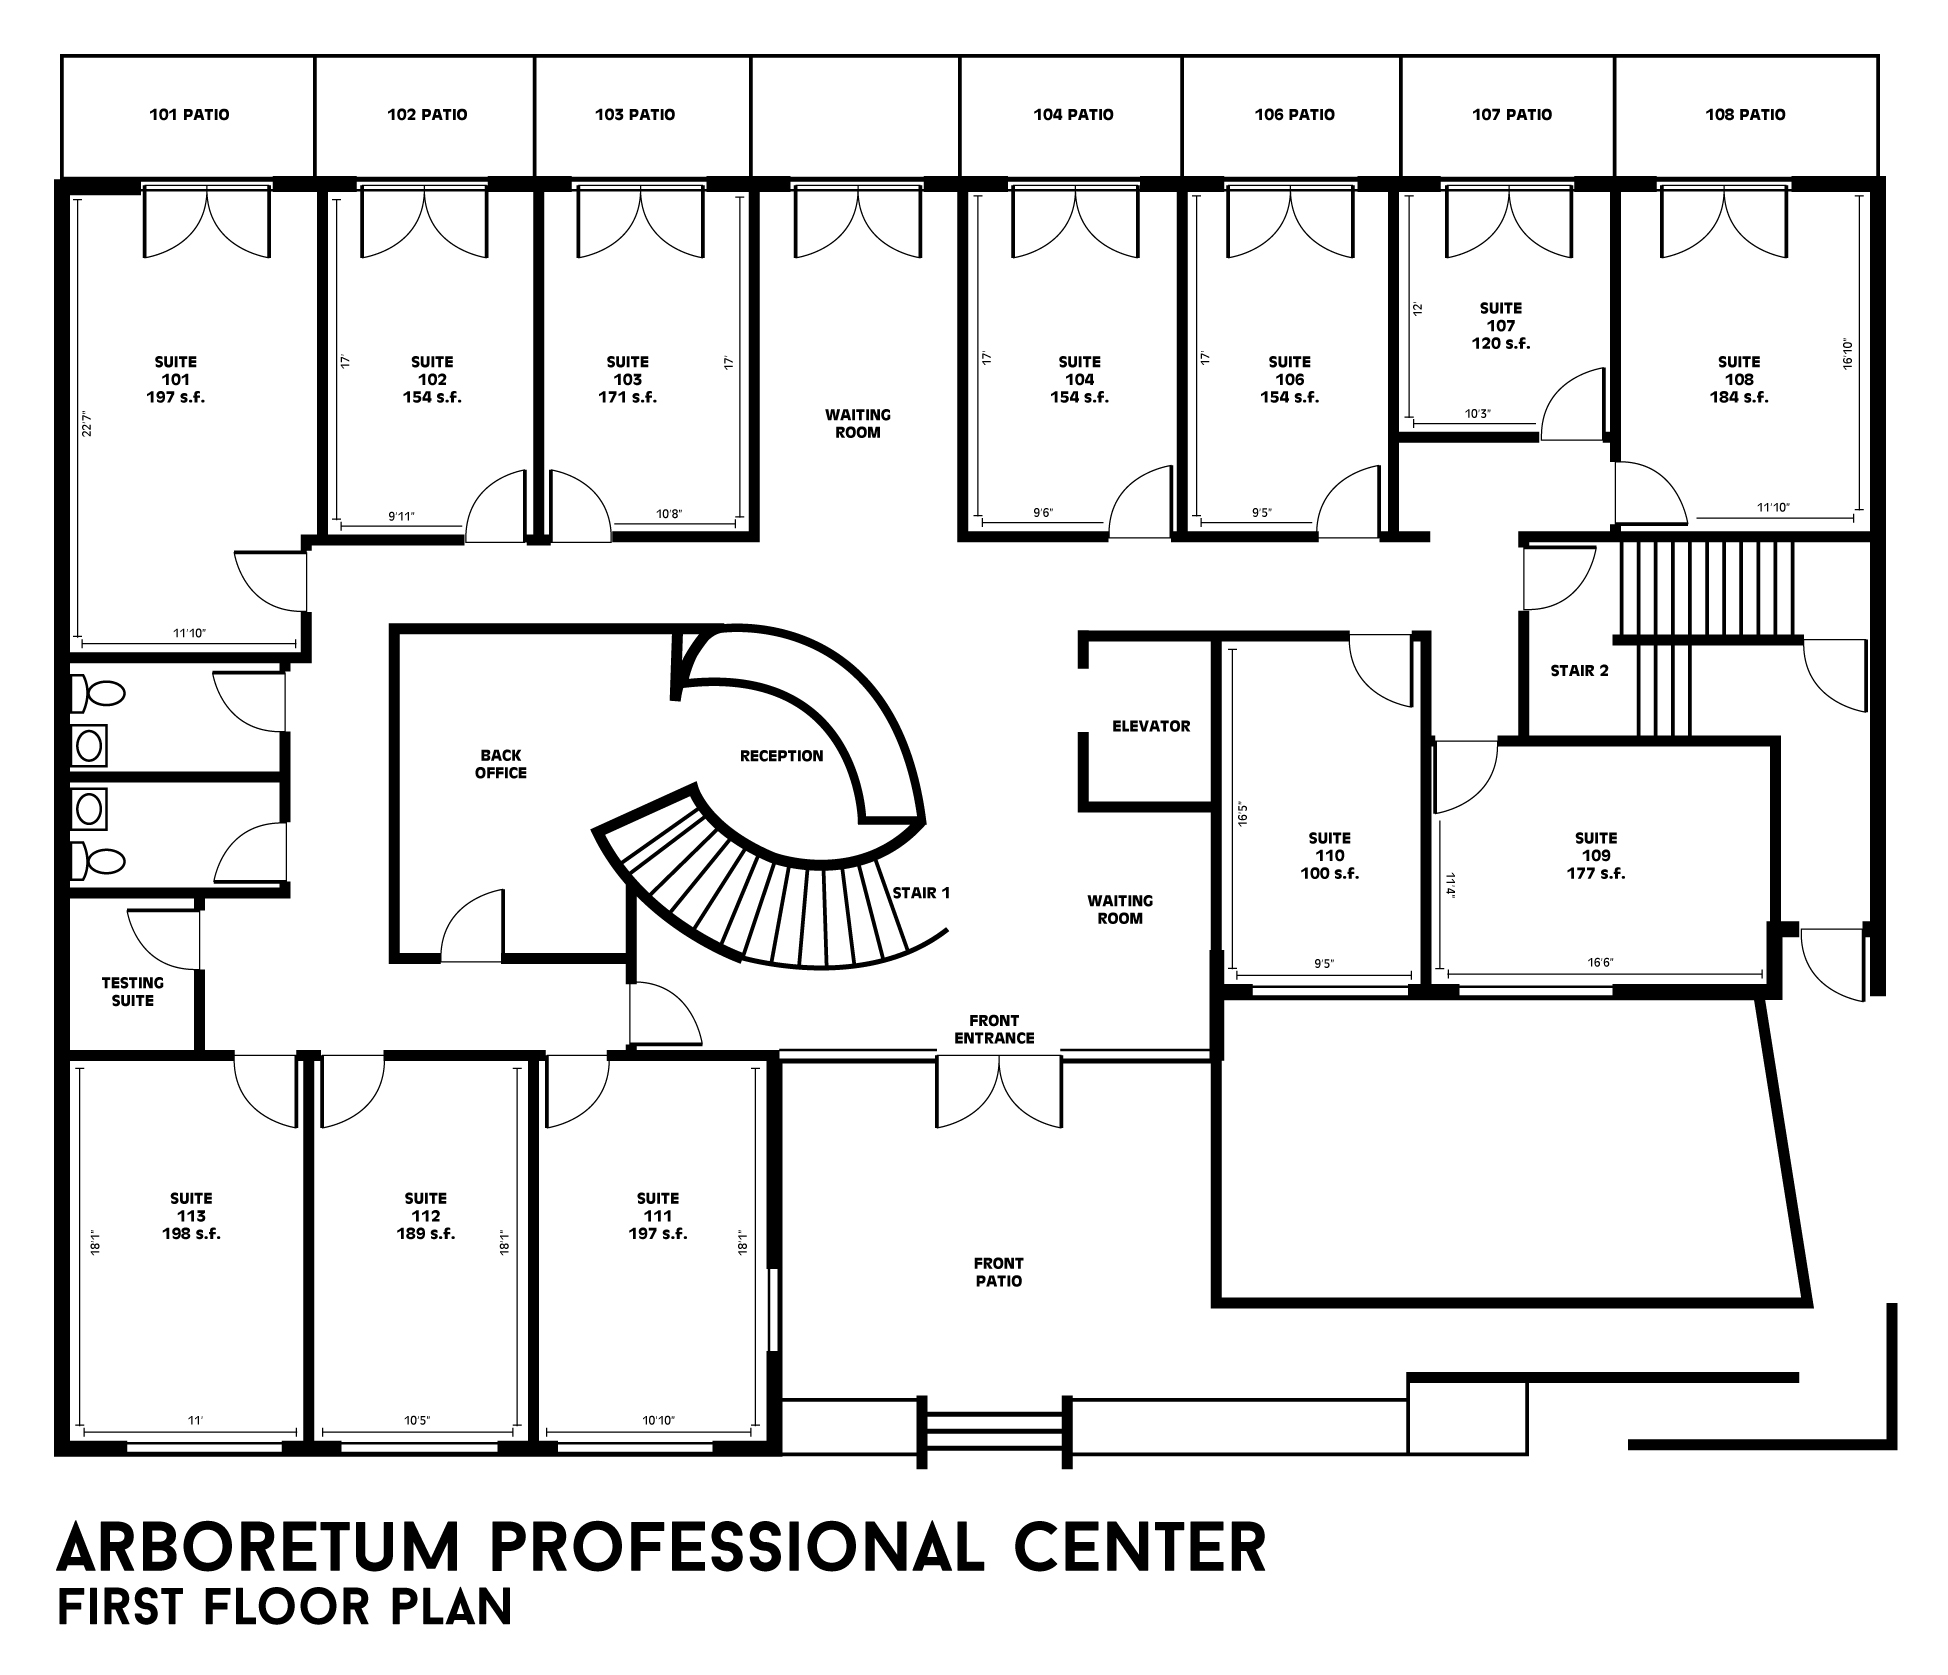 Building floor plans arboretum professional center for Floor plans first